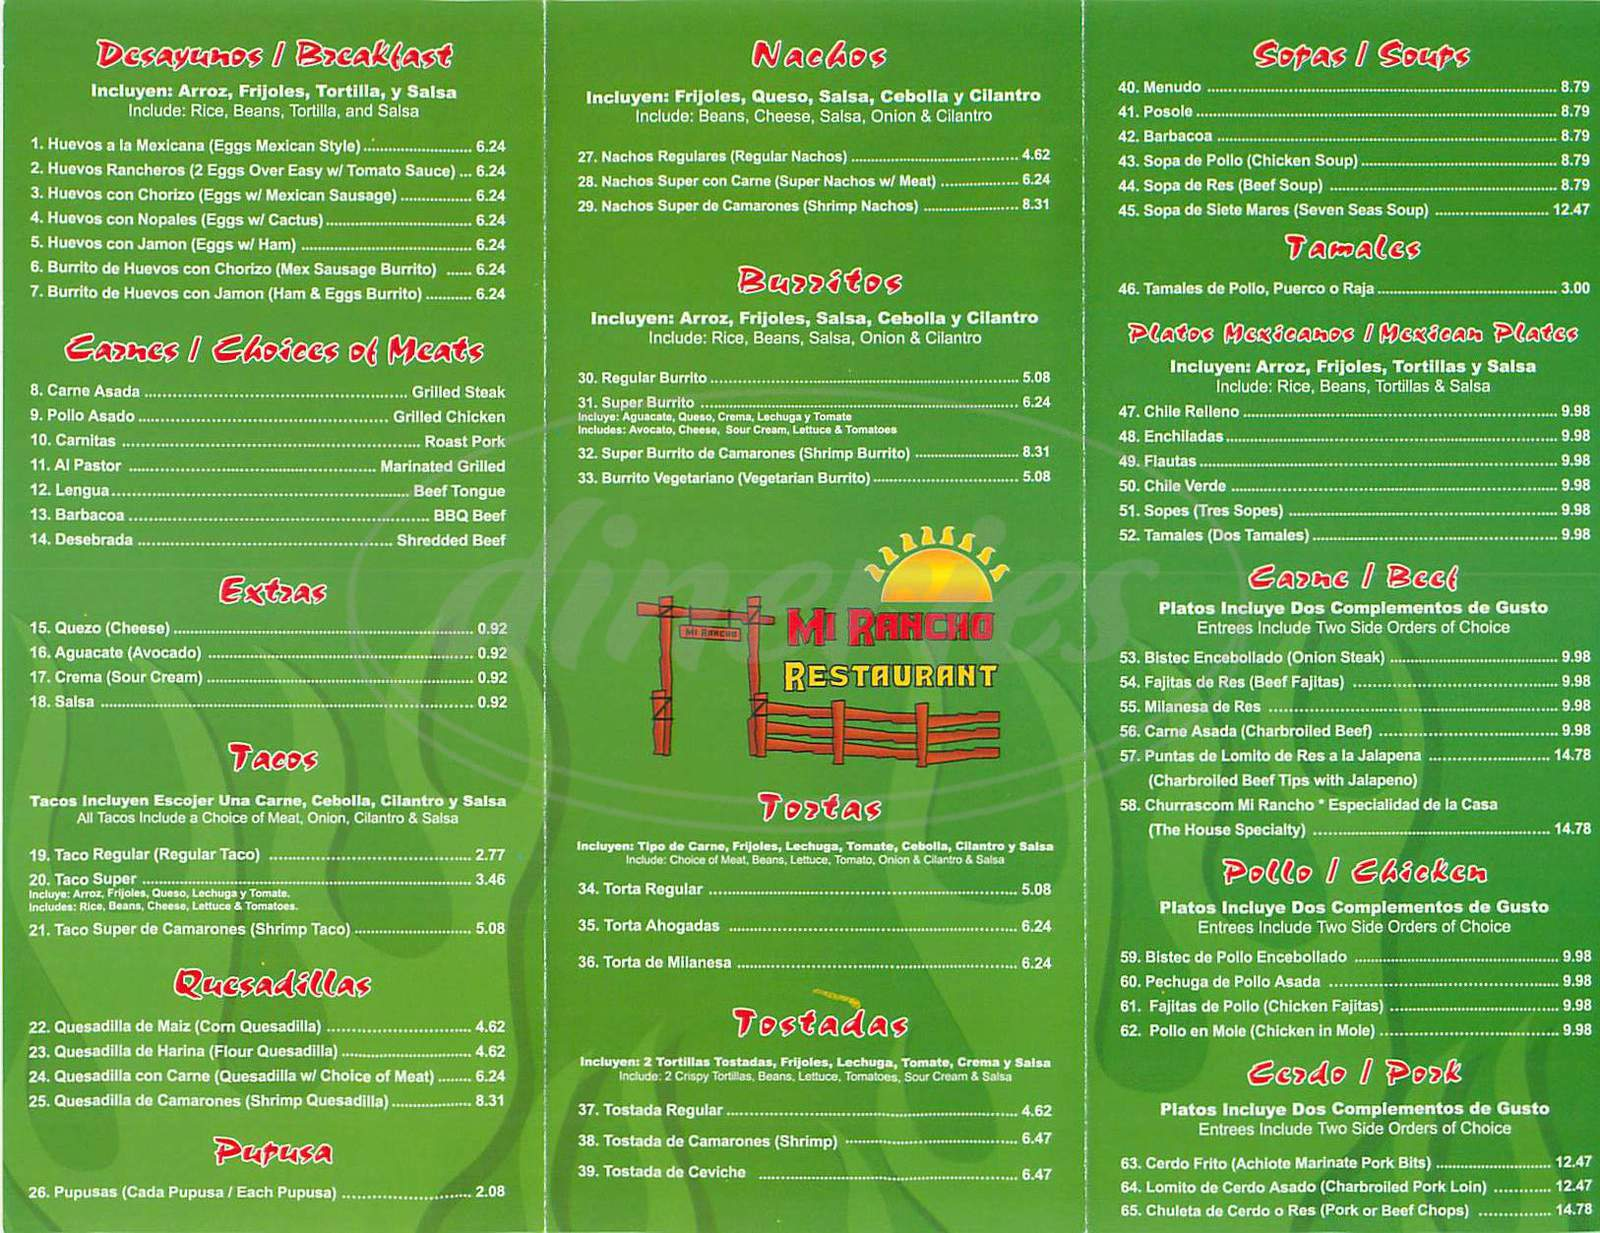 menu for Mi Rancho Restaurant